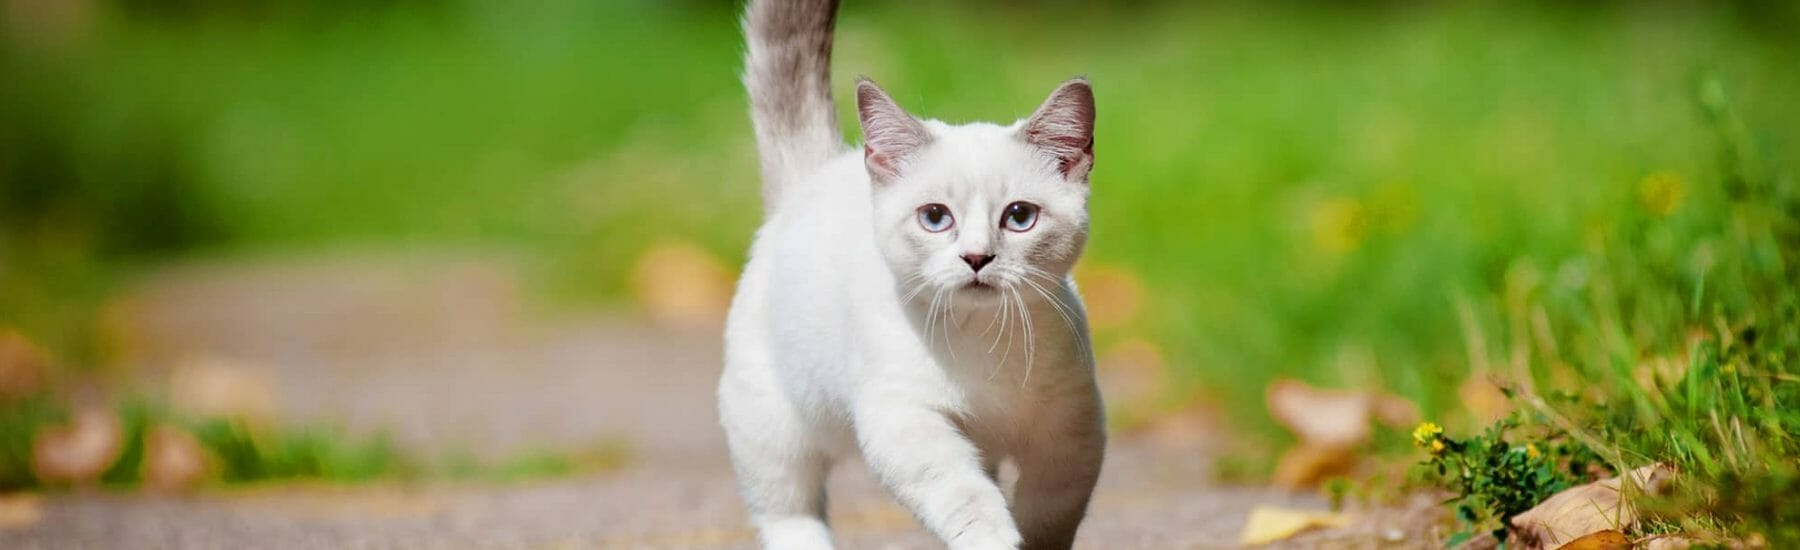 White cat walking on a path